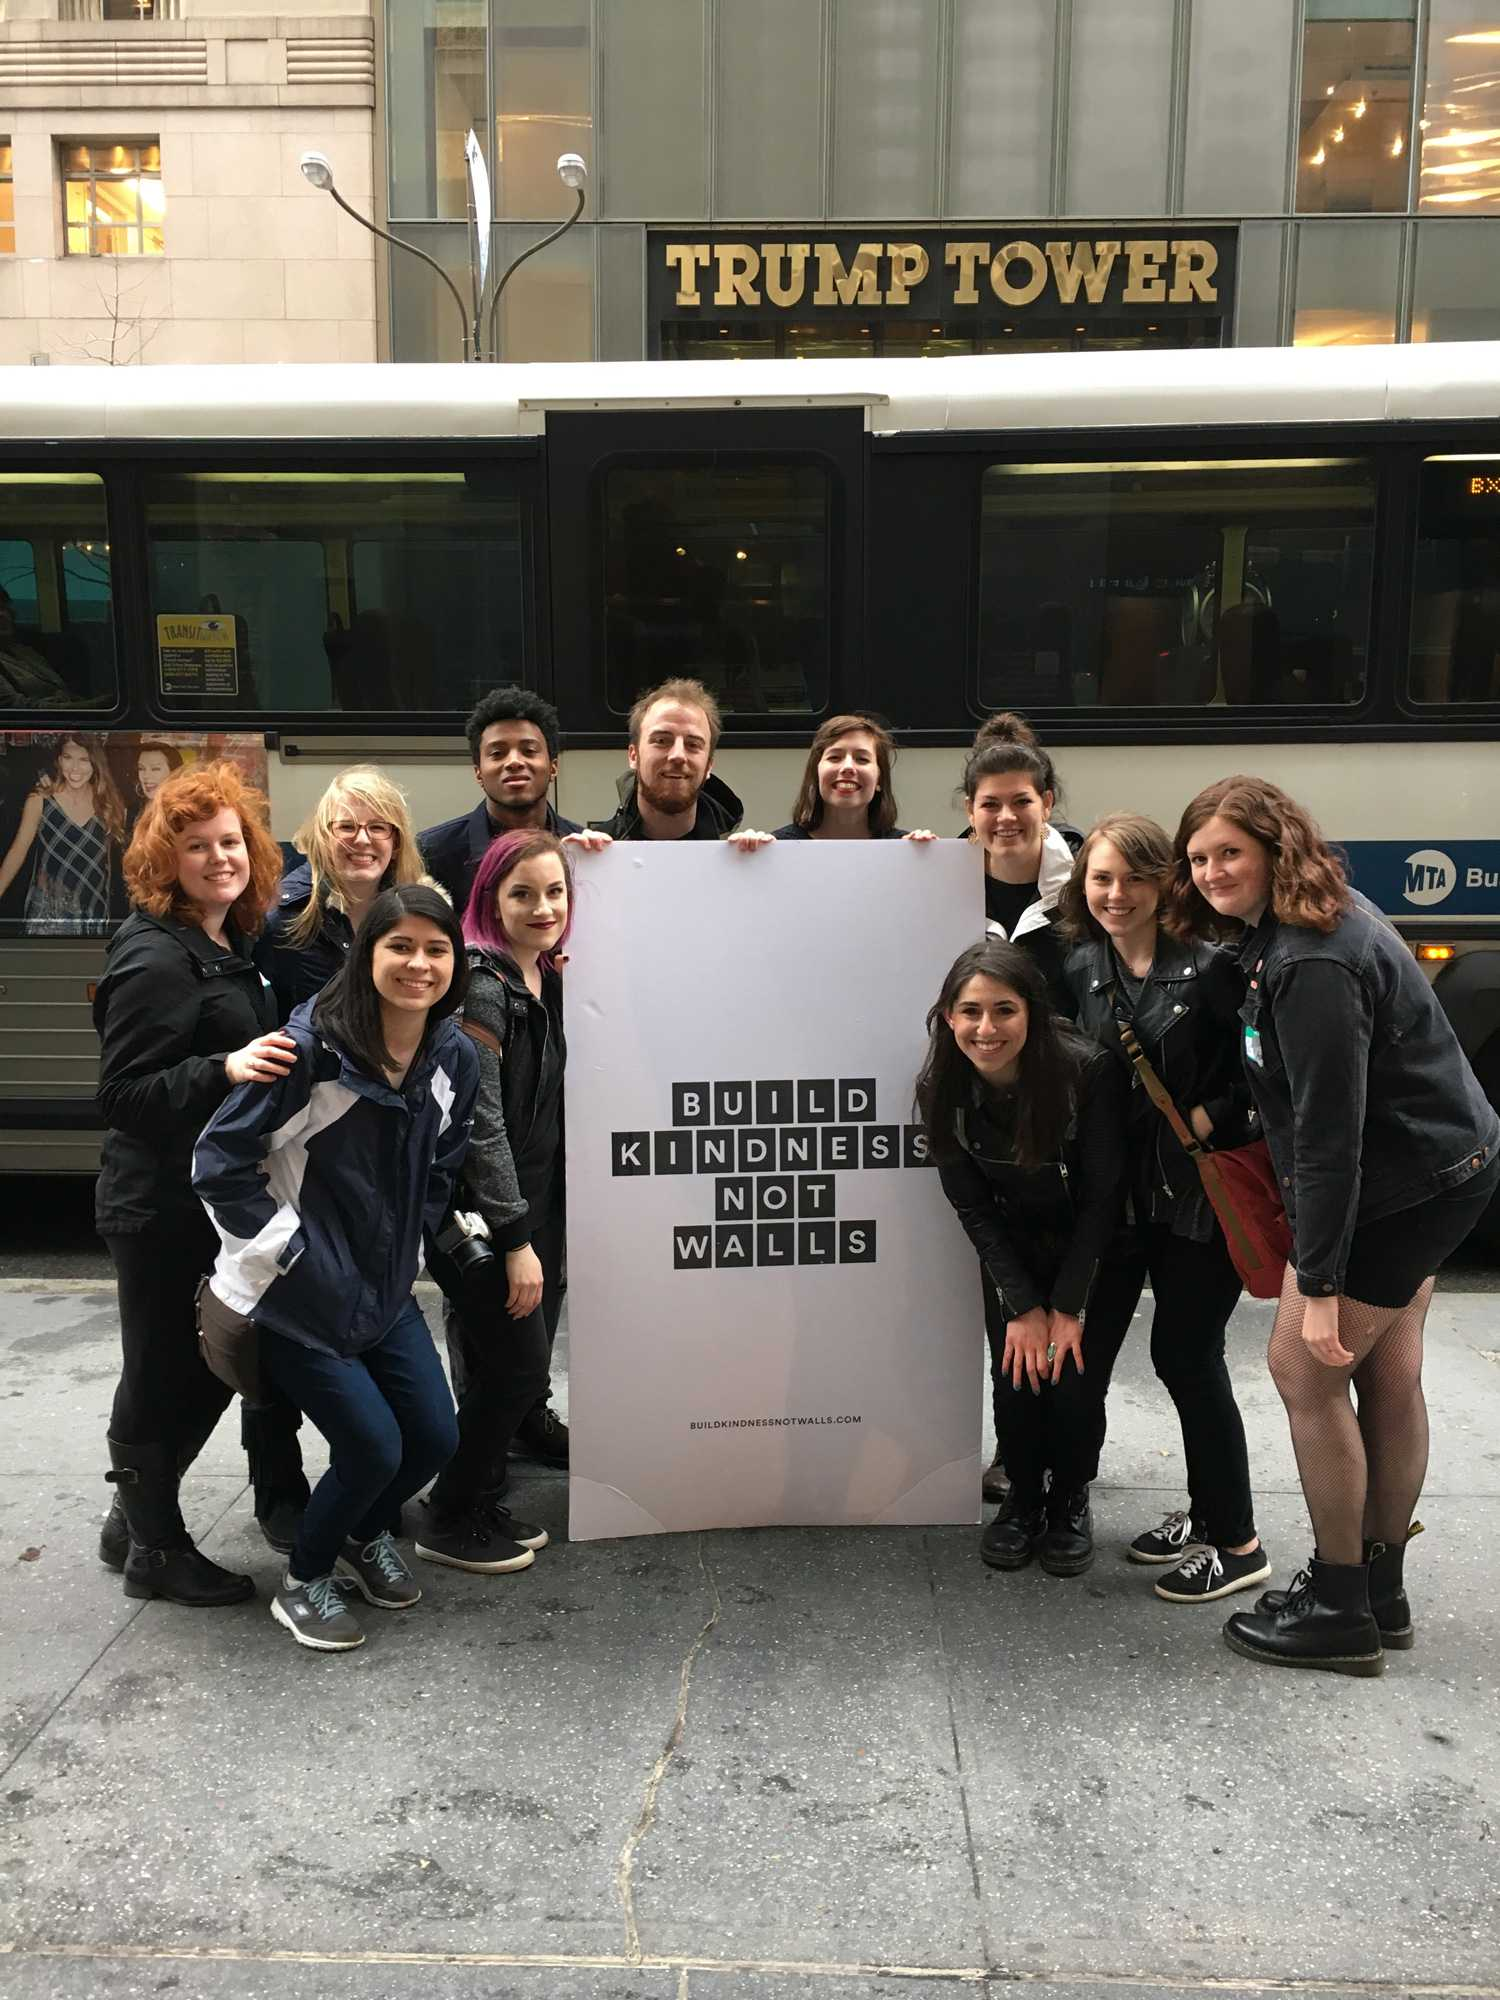 """Appalachian State University students hold up a sign that reads """"build kindness not walls,"""" in front of Trump Tower in New York City. Photo courtesy Rachel Bowles."""